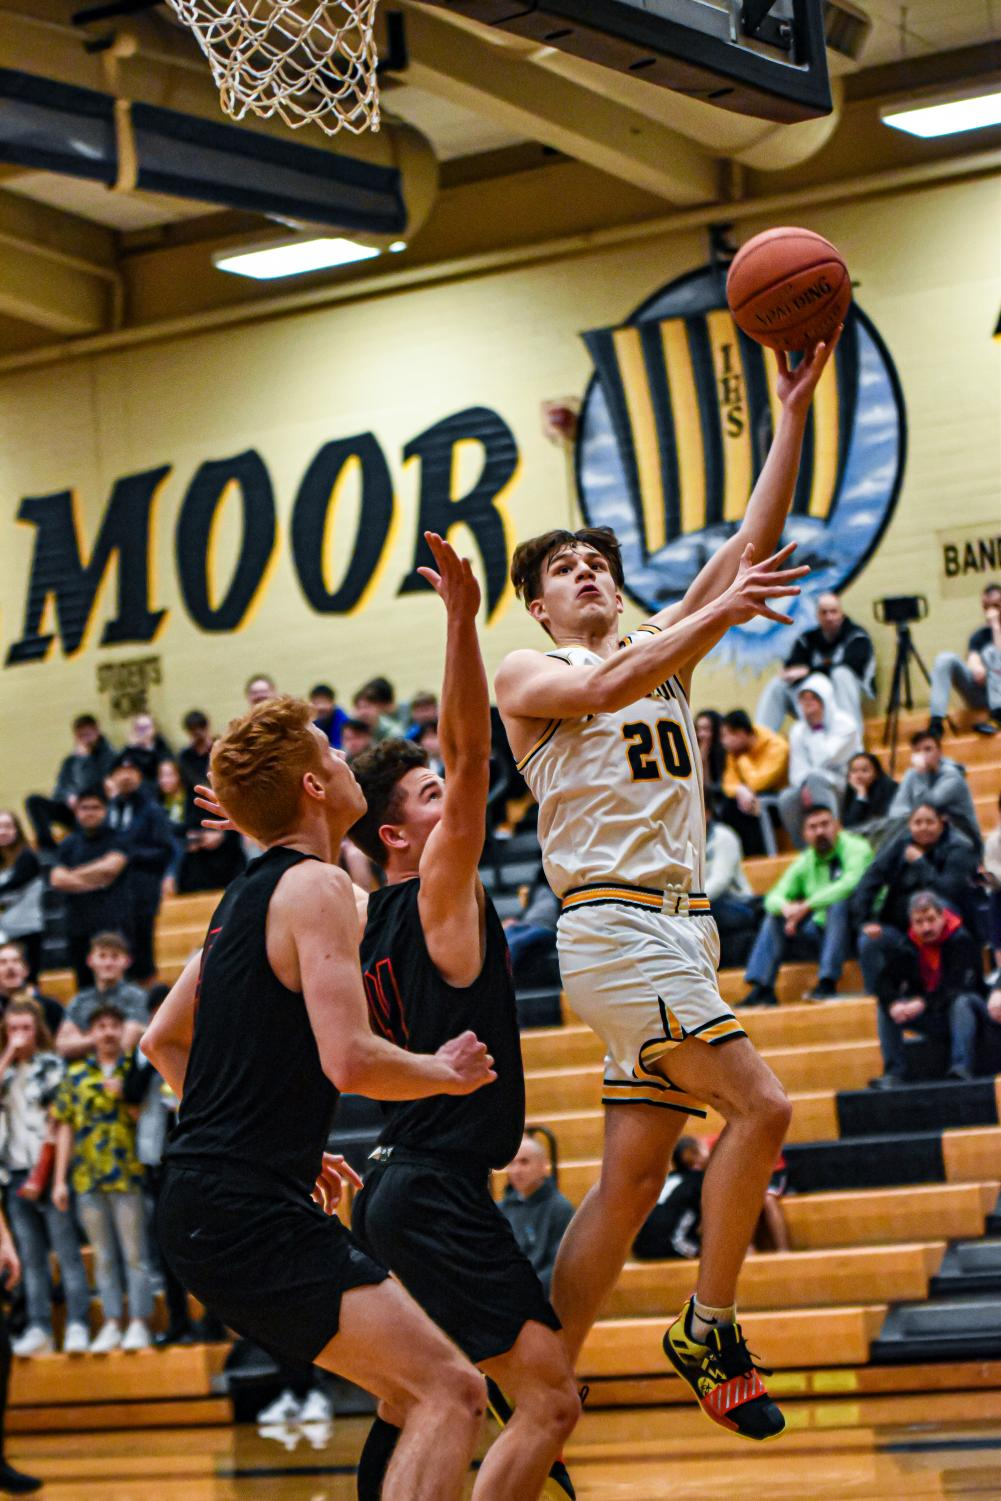 Senior Brady Casto shoots a basket in the Inglemoor gym  on many afternoons against other high schools. Photo cour- tesy of Evan Morud